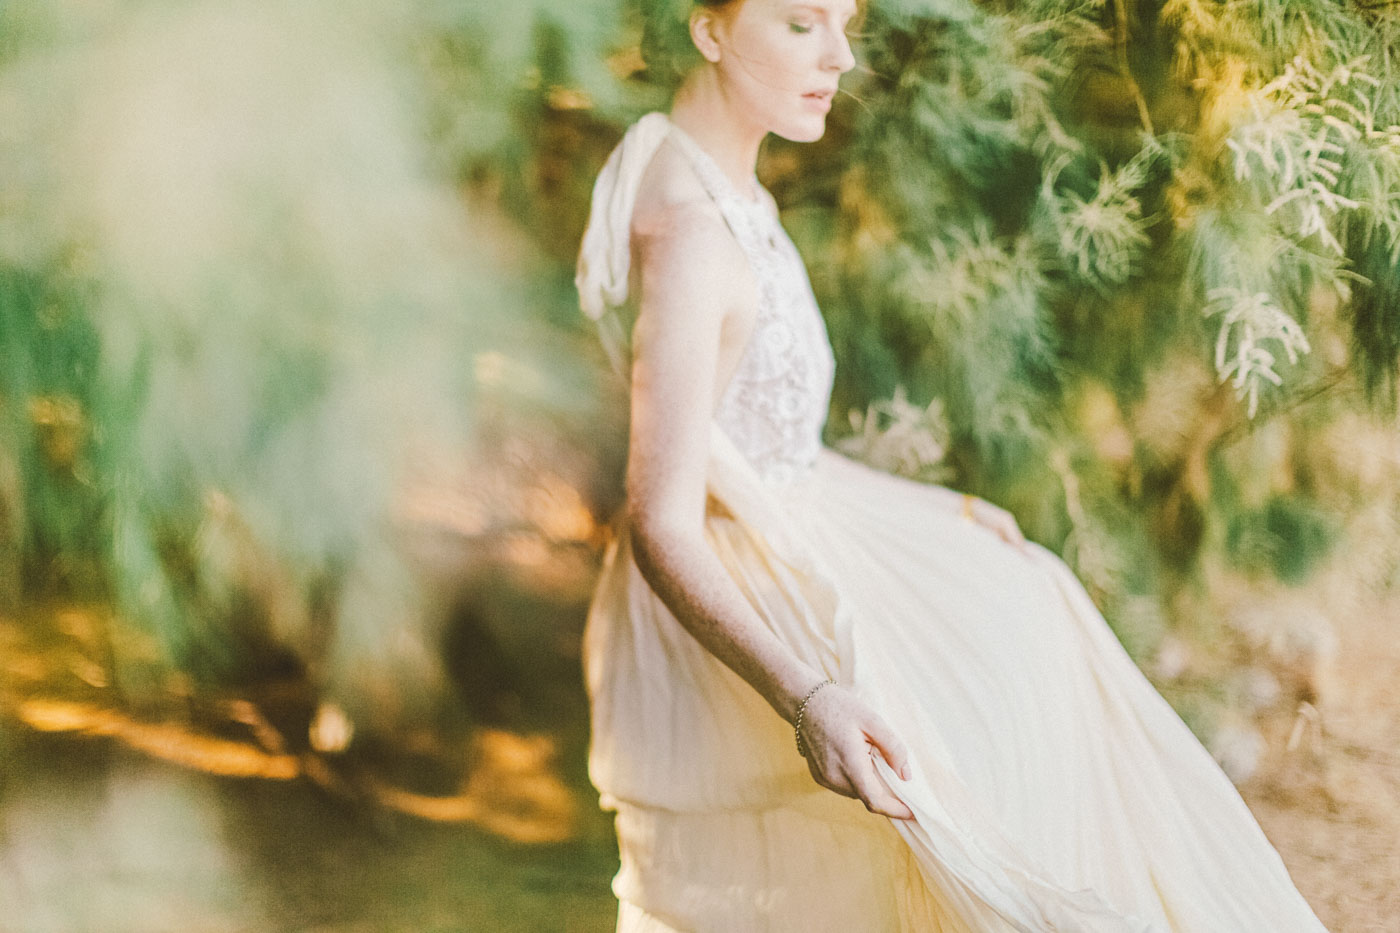 Delicate and whimsical bride Hawaii destination wedding photographer